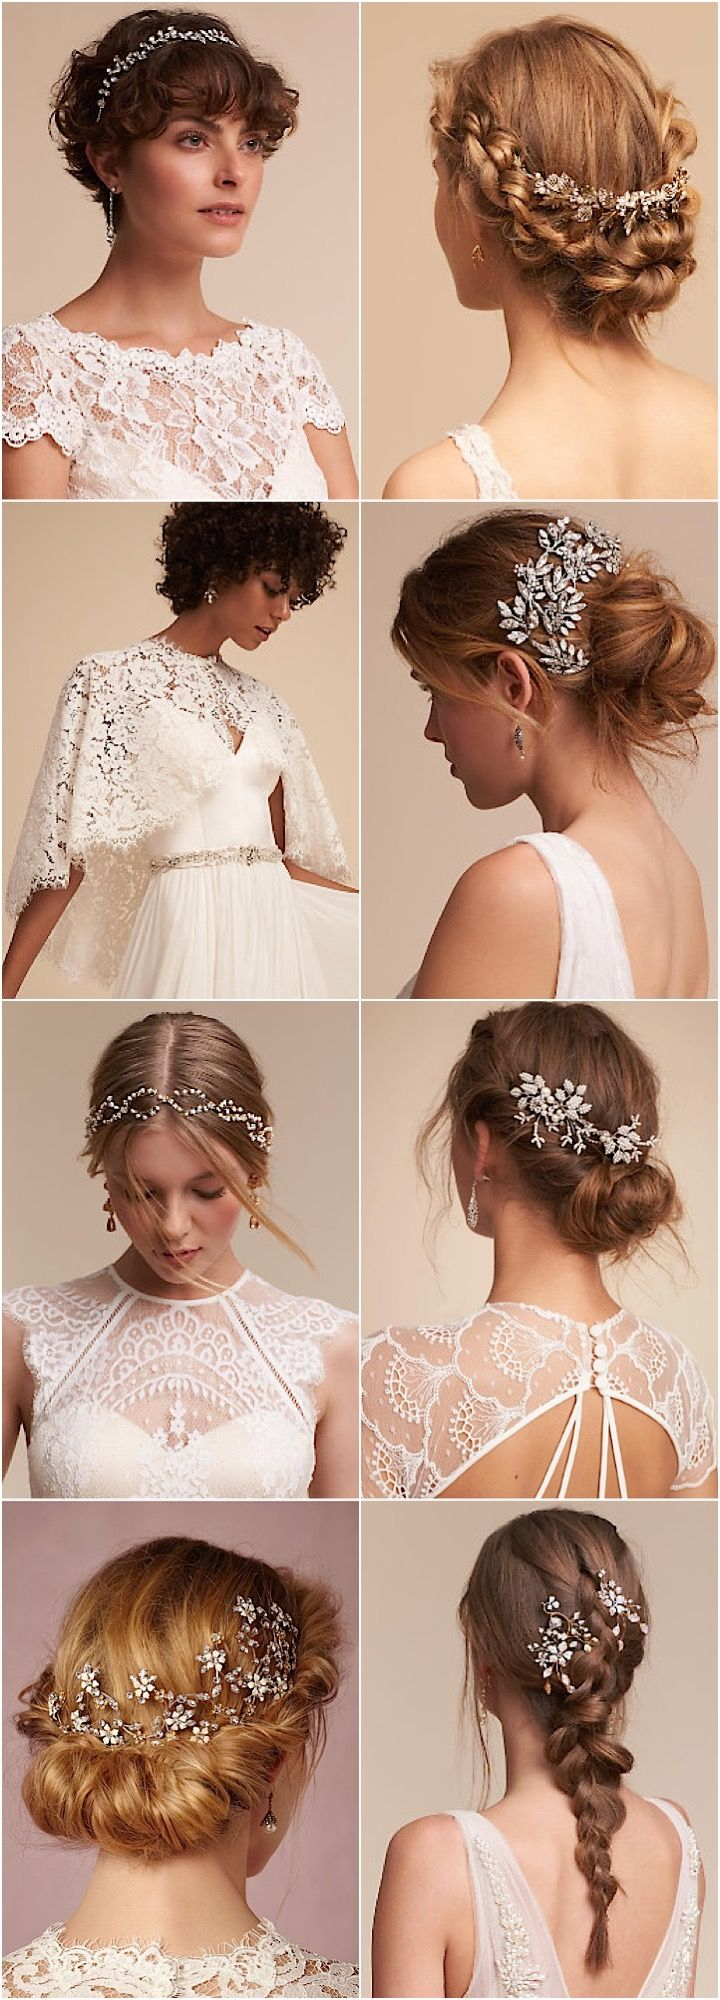 BHLDN winter wedding hair accessory ideas